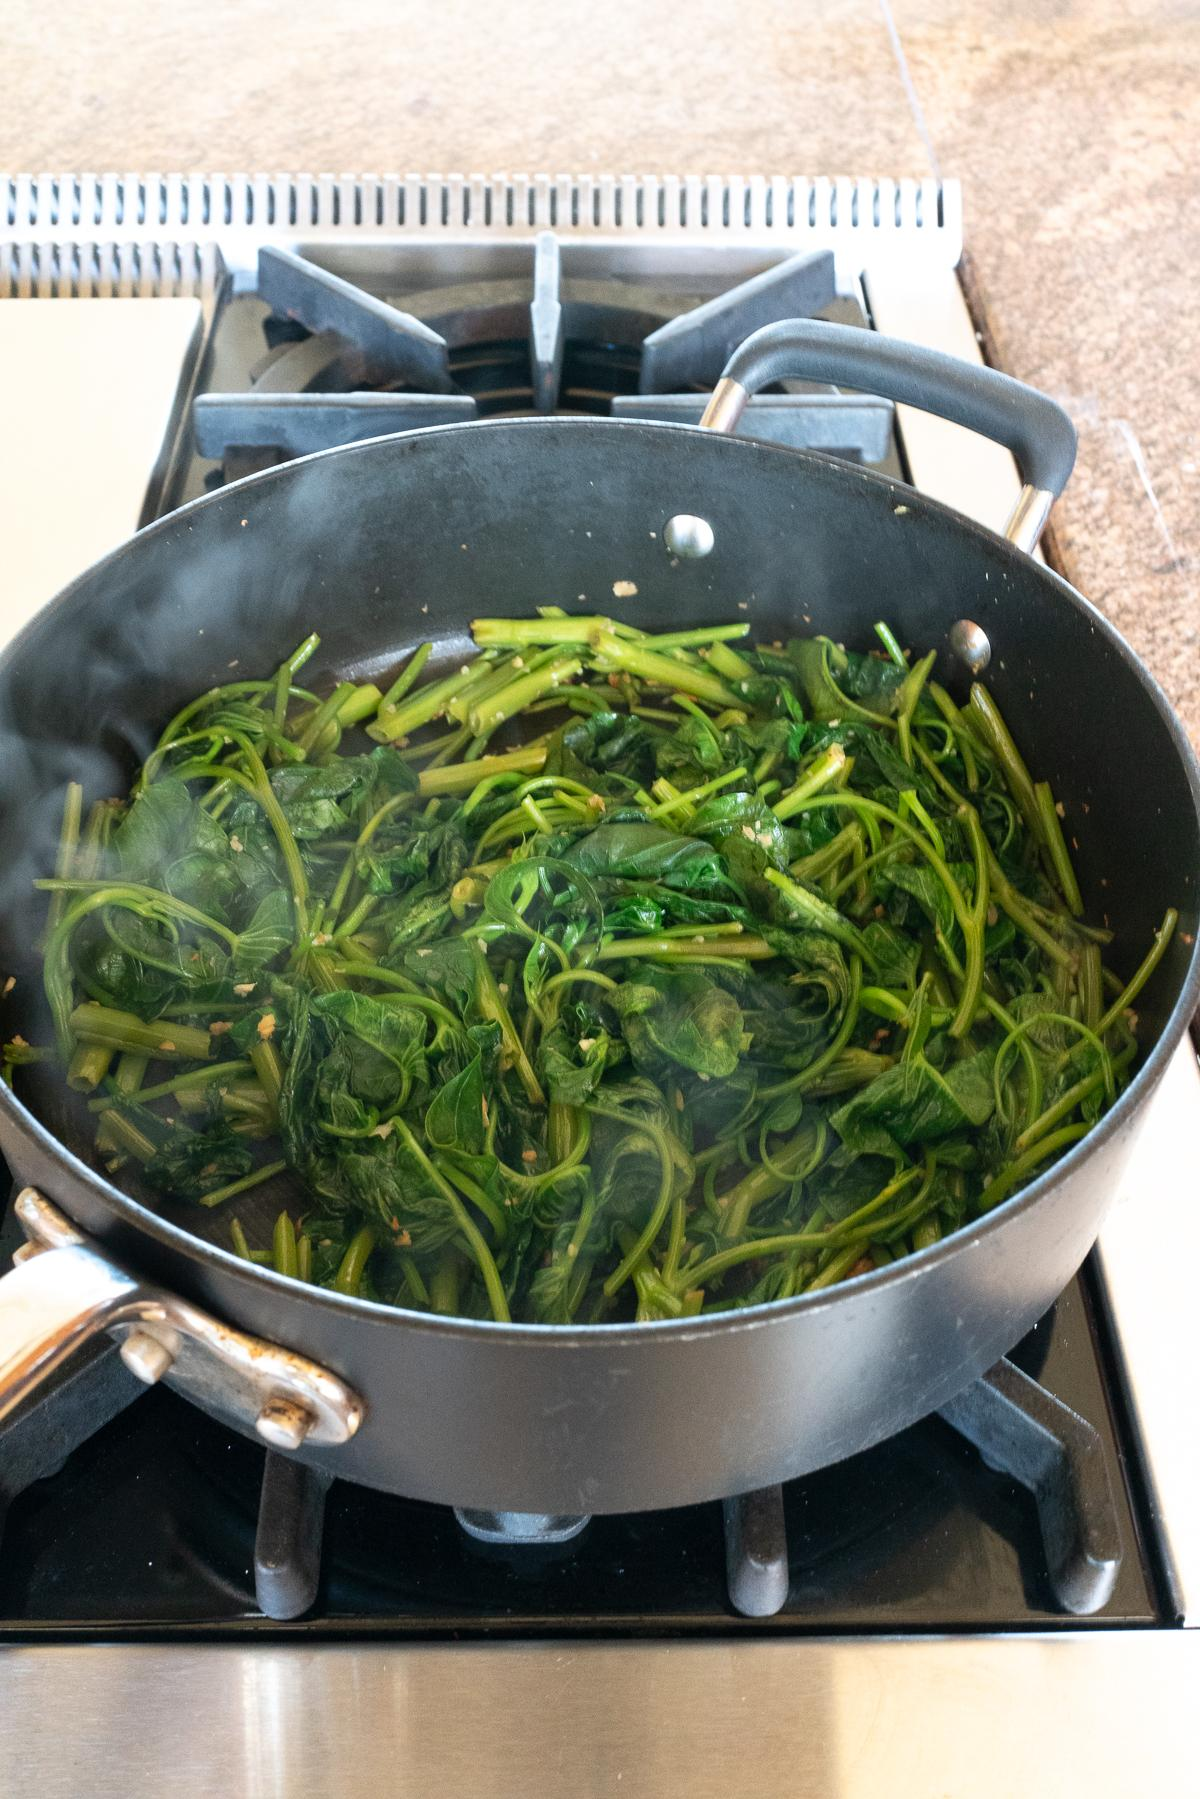 Cooking stir fried ong choy in a pan.